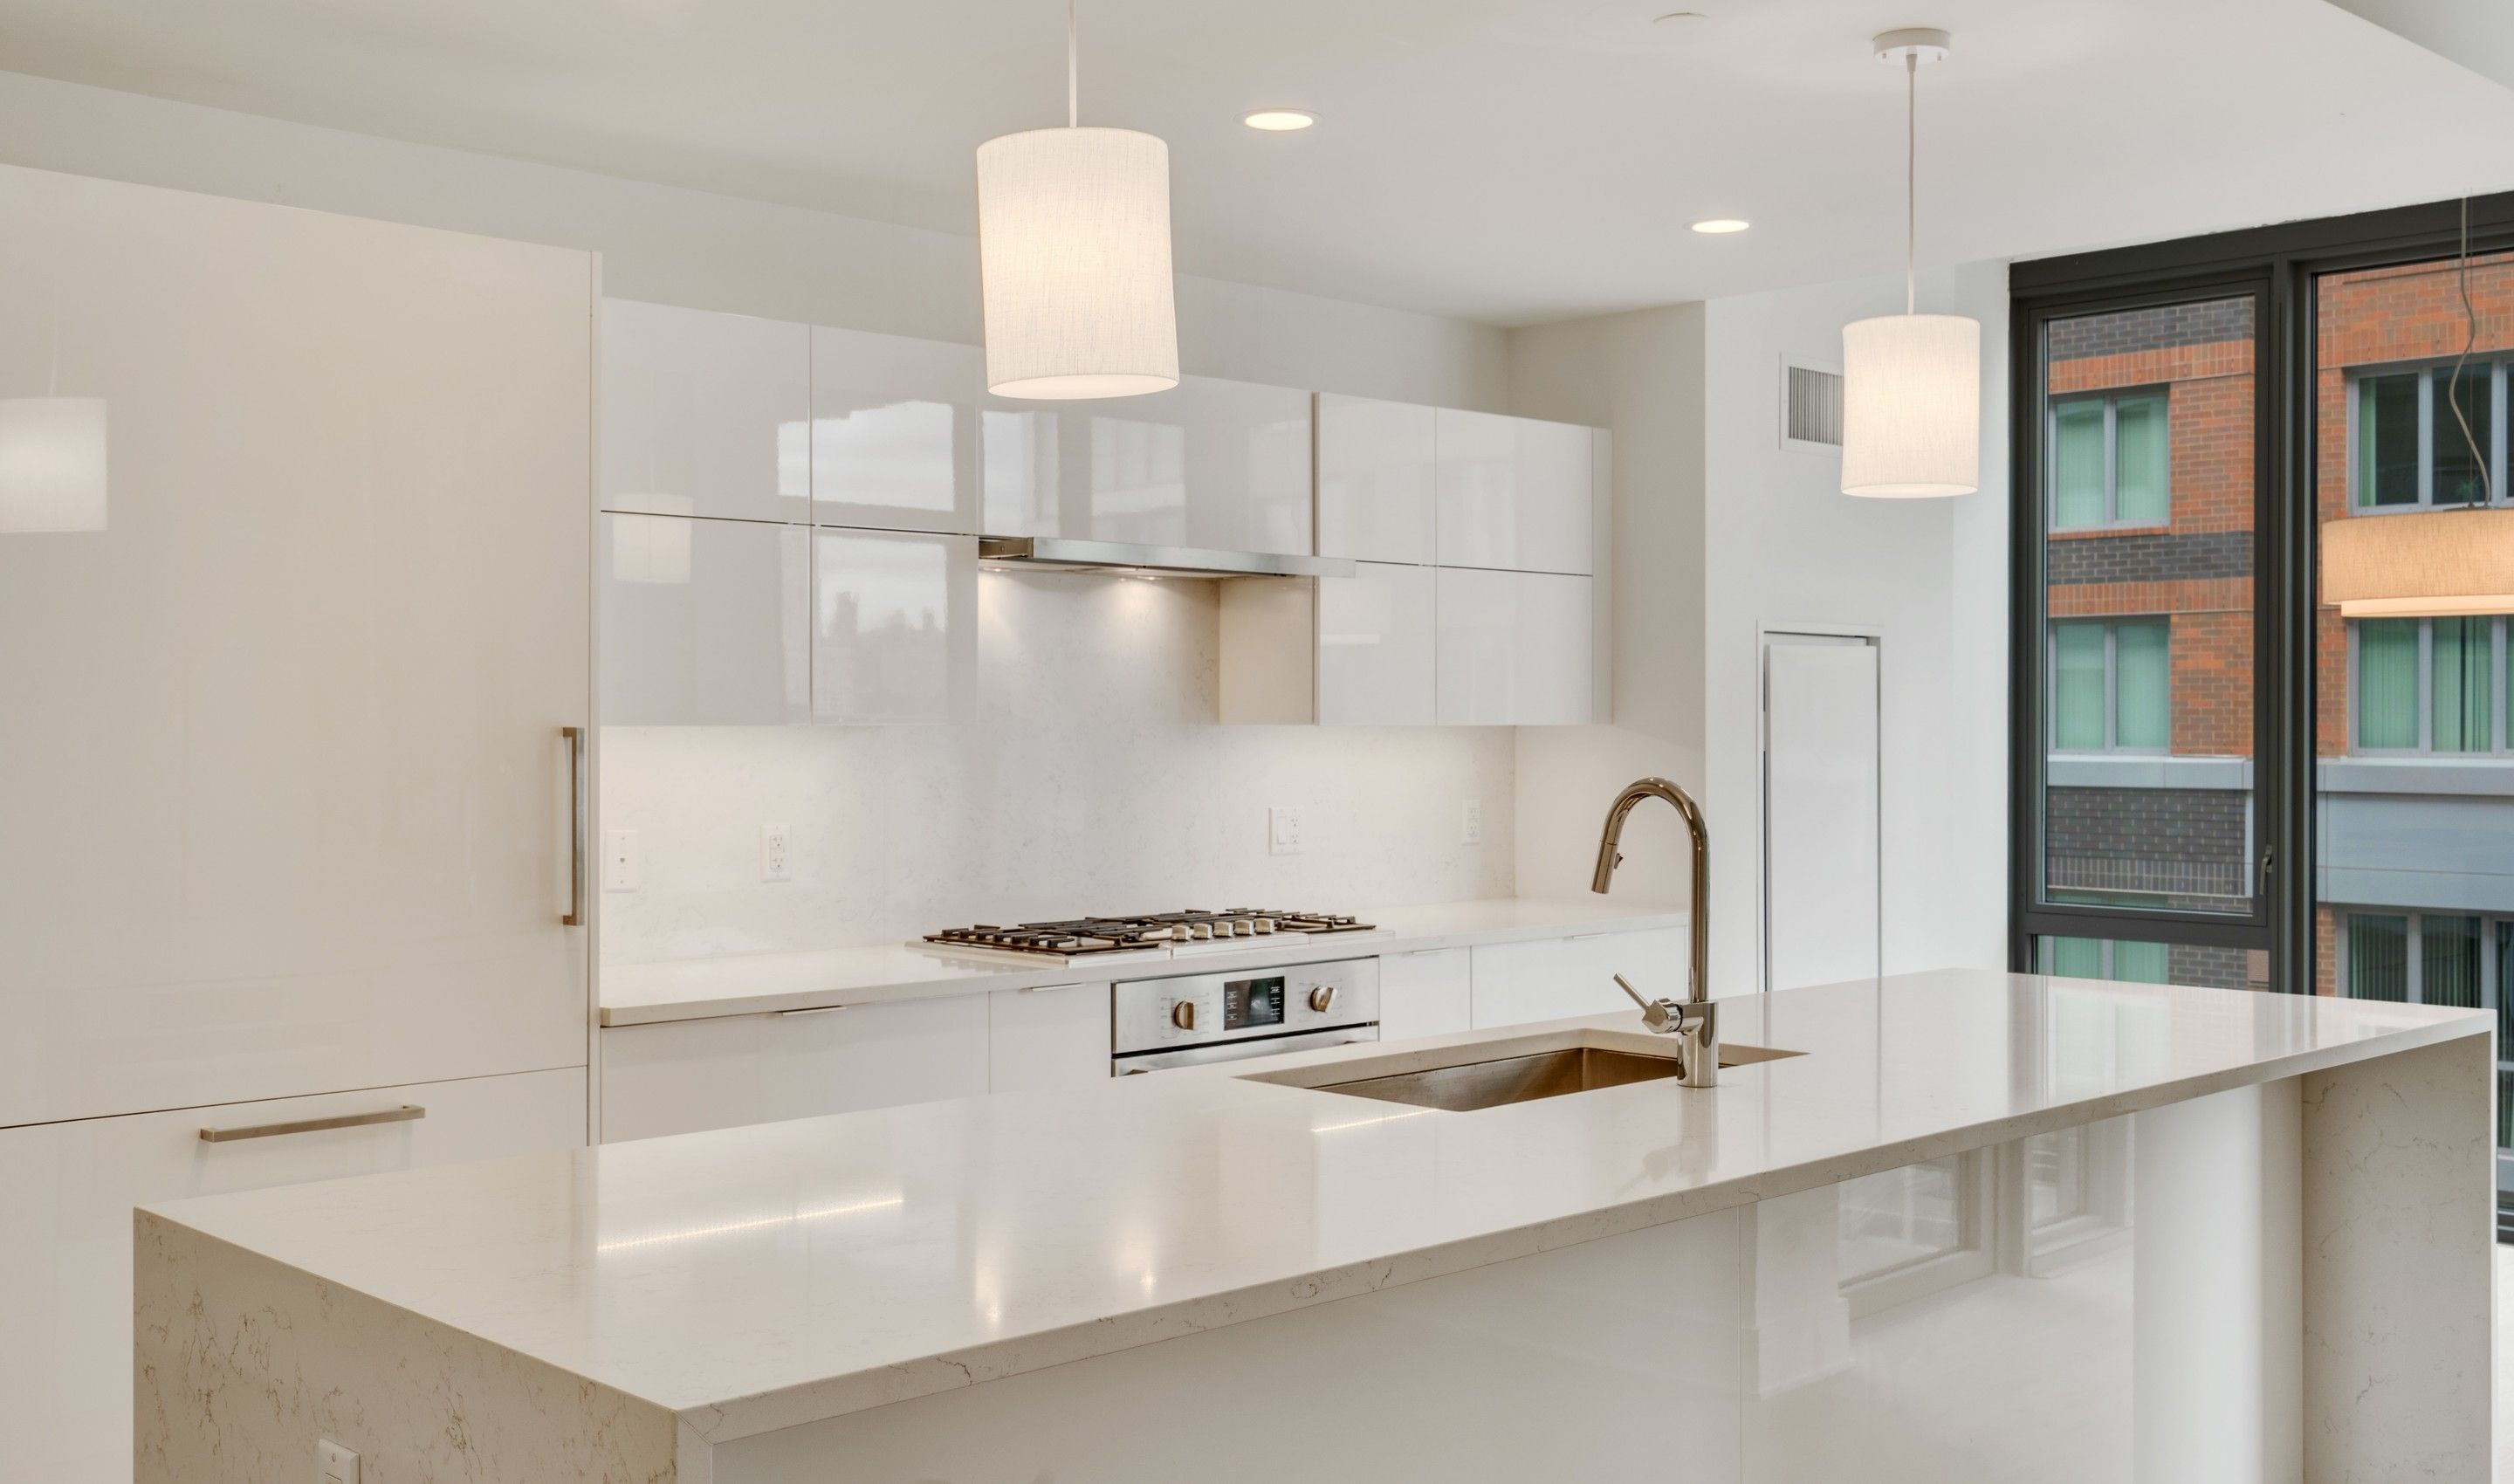 Kitchen featured in the C2 By K. Hovnanian® Homes in Hudson County, NJ